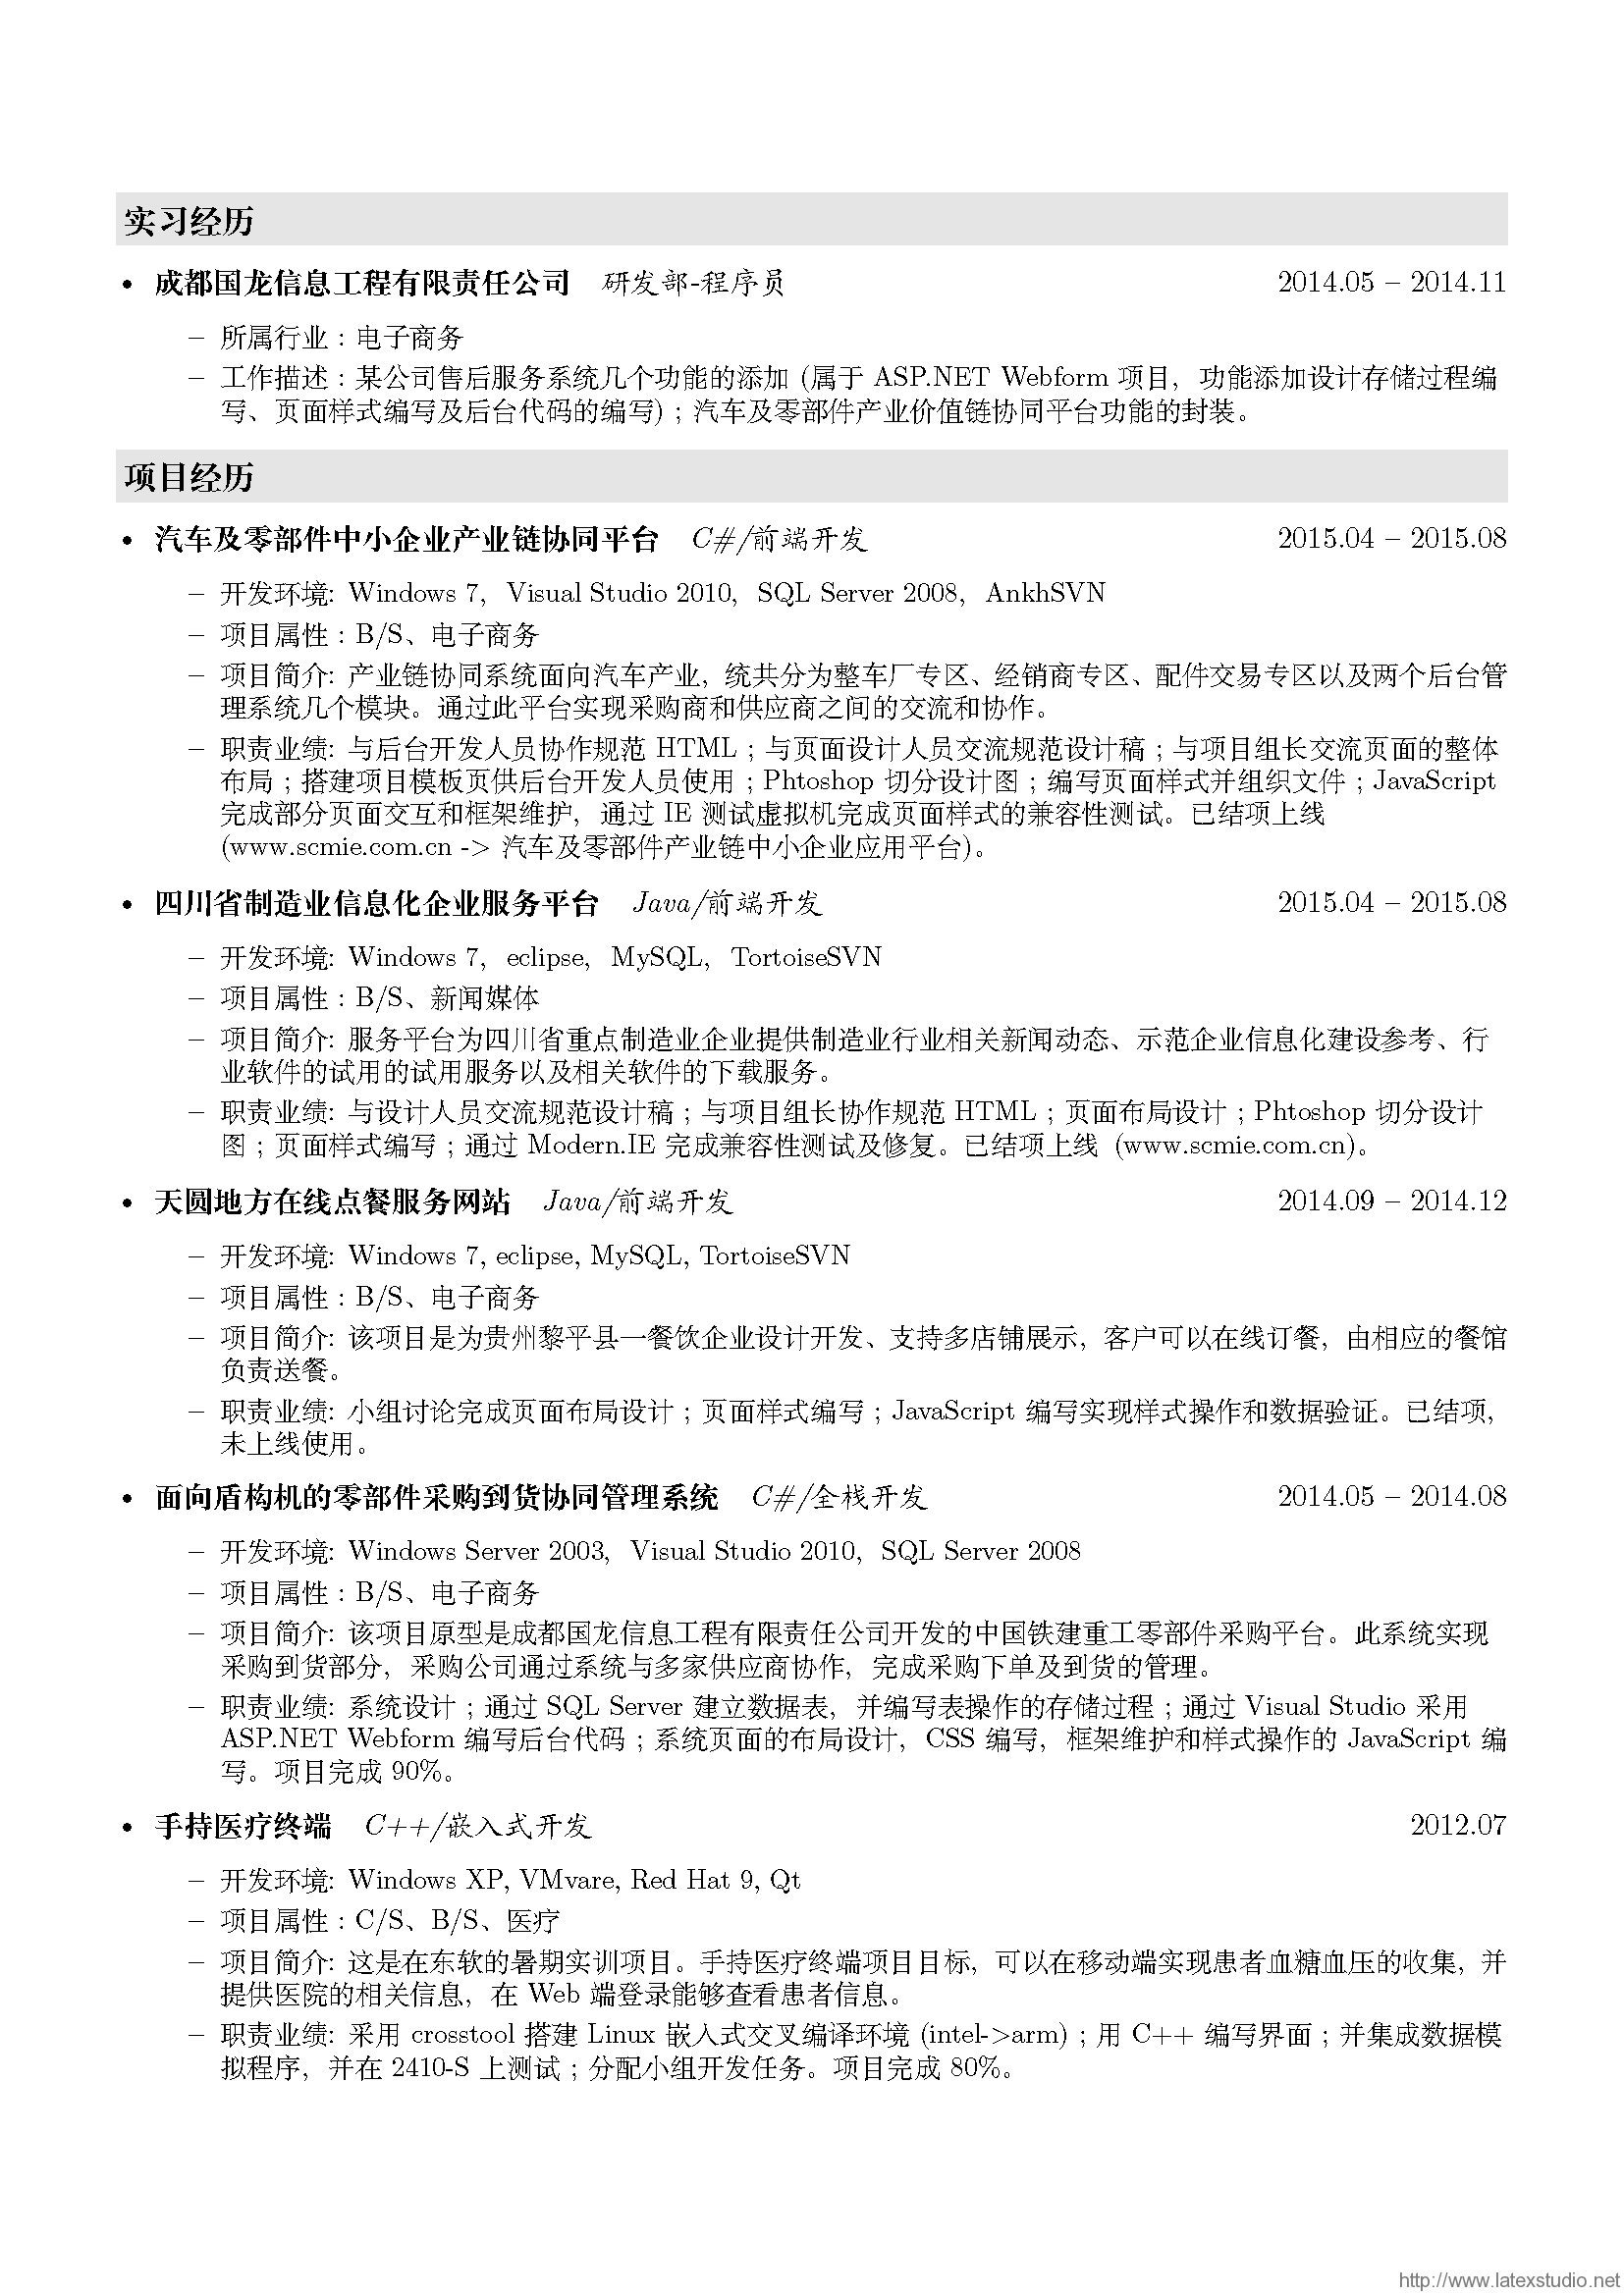 resume_page_2